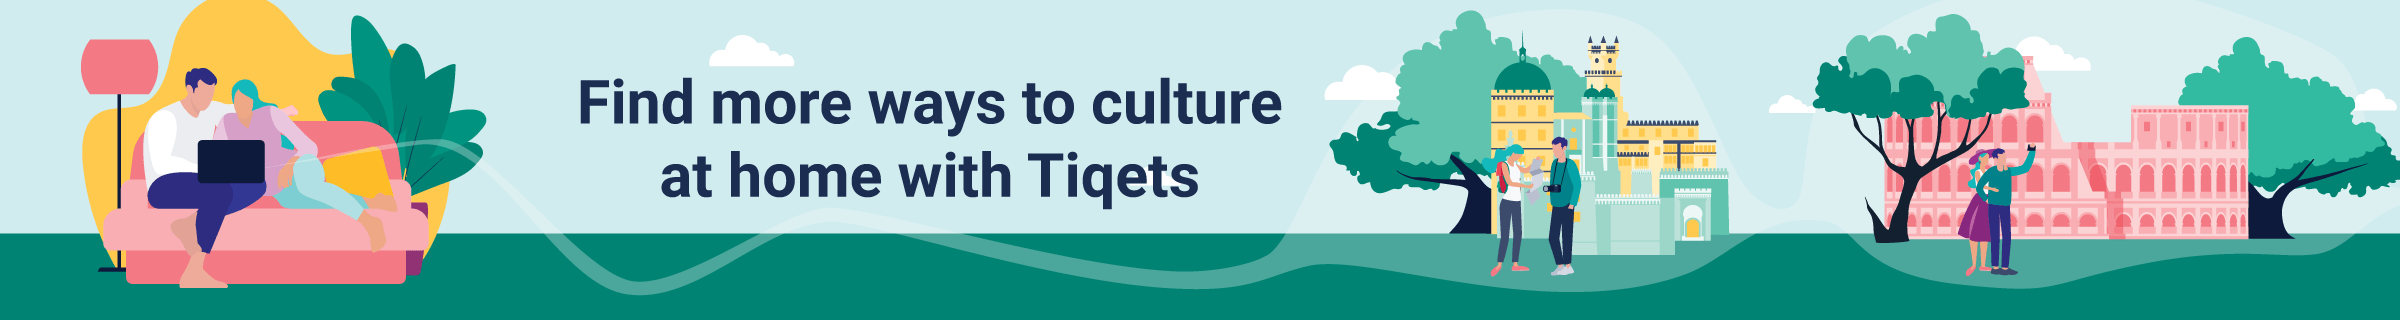 More ways to cultureMore ways to culture at home with Tiqets